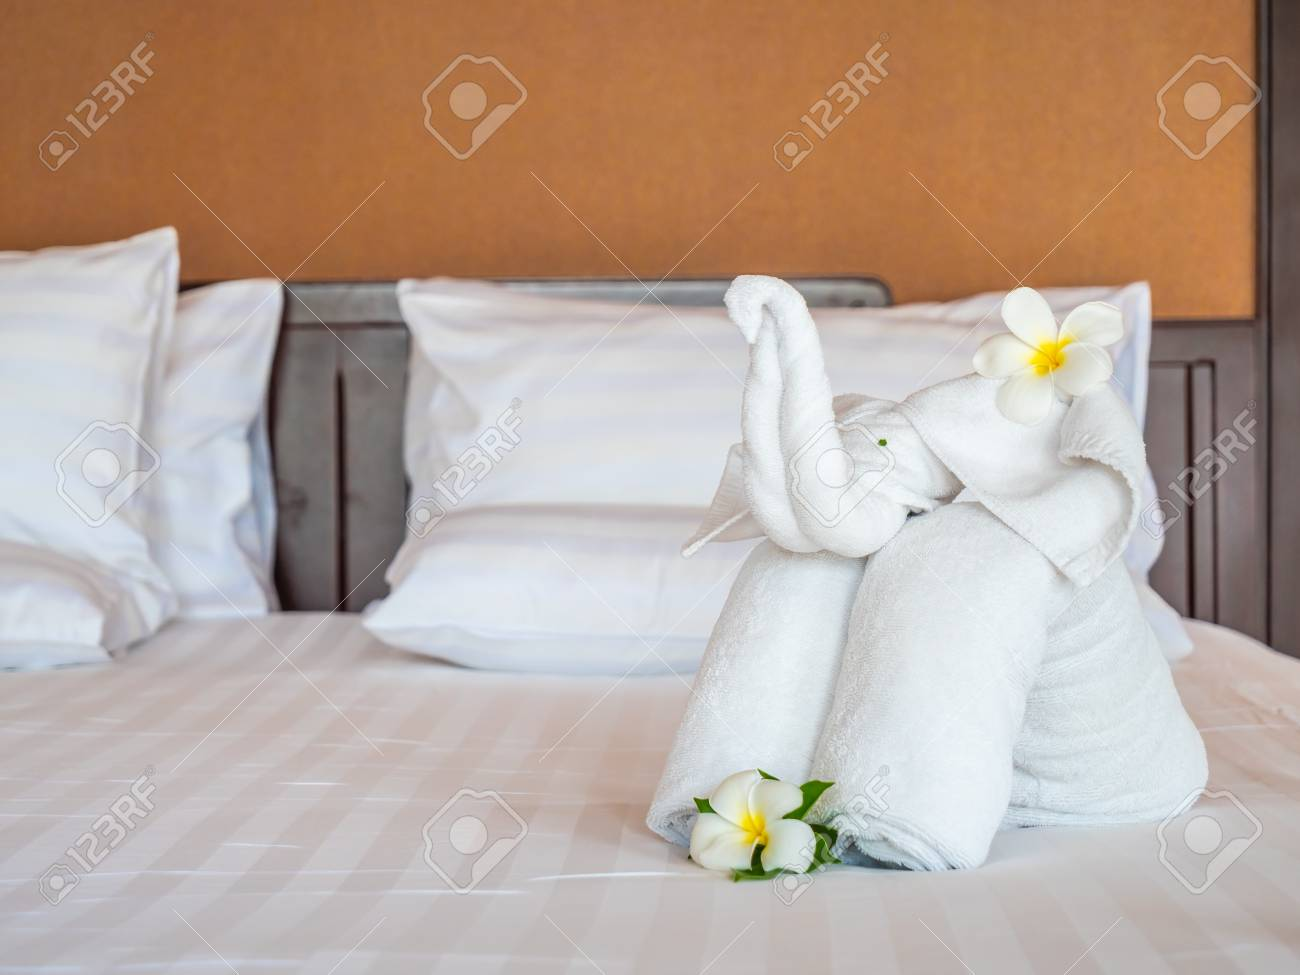 Decoration Hotel White Elephant Towel And Comfortable Pillow On Bed Decoration